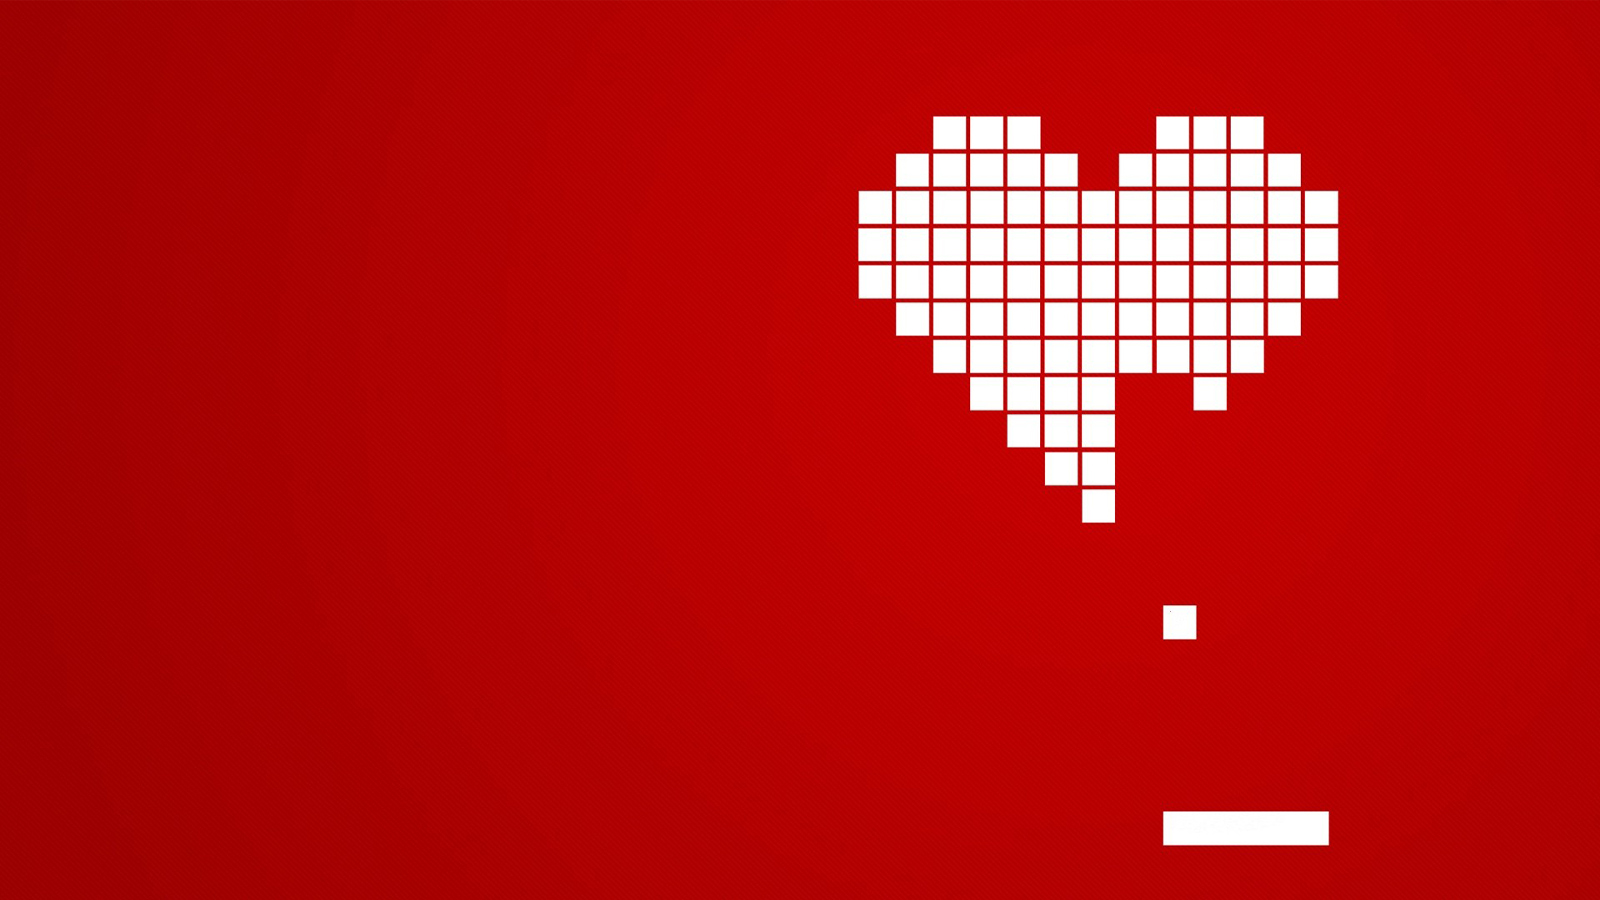 Retro Video Game Desktop Love Wallpaper